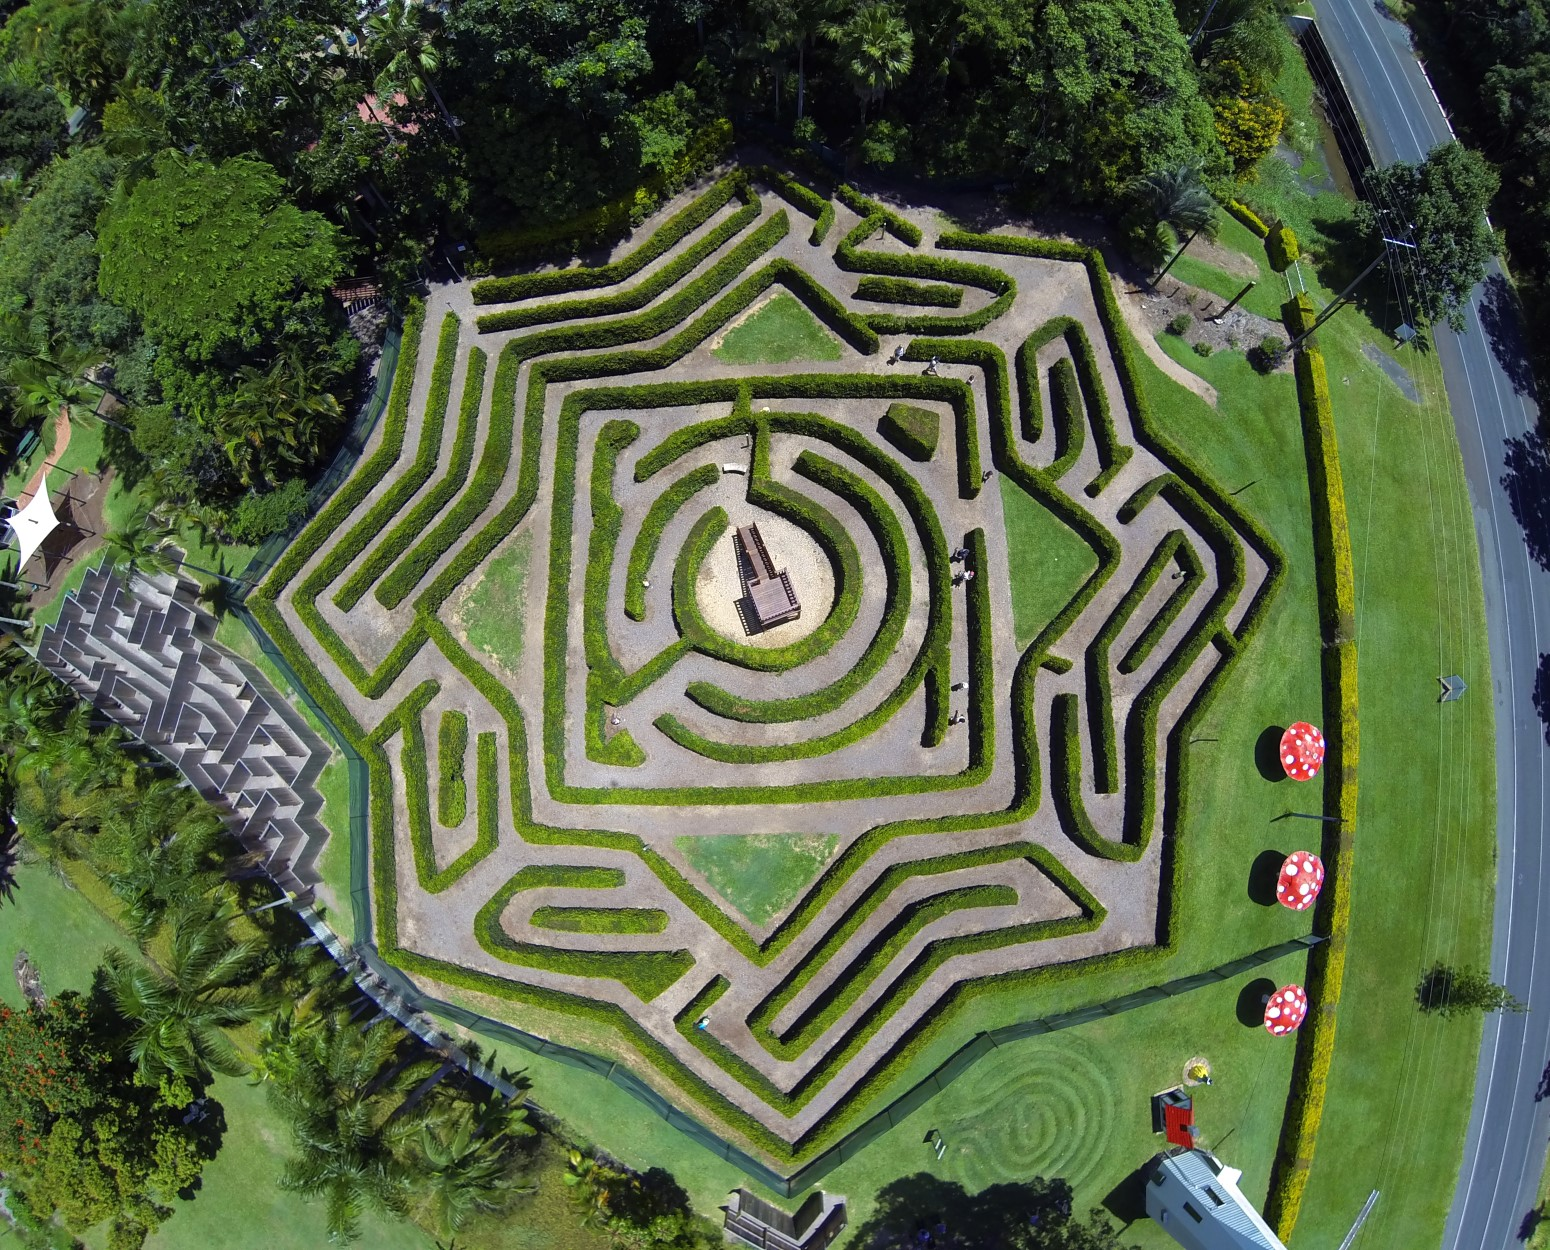 Bellingham Maze - Find Attractions